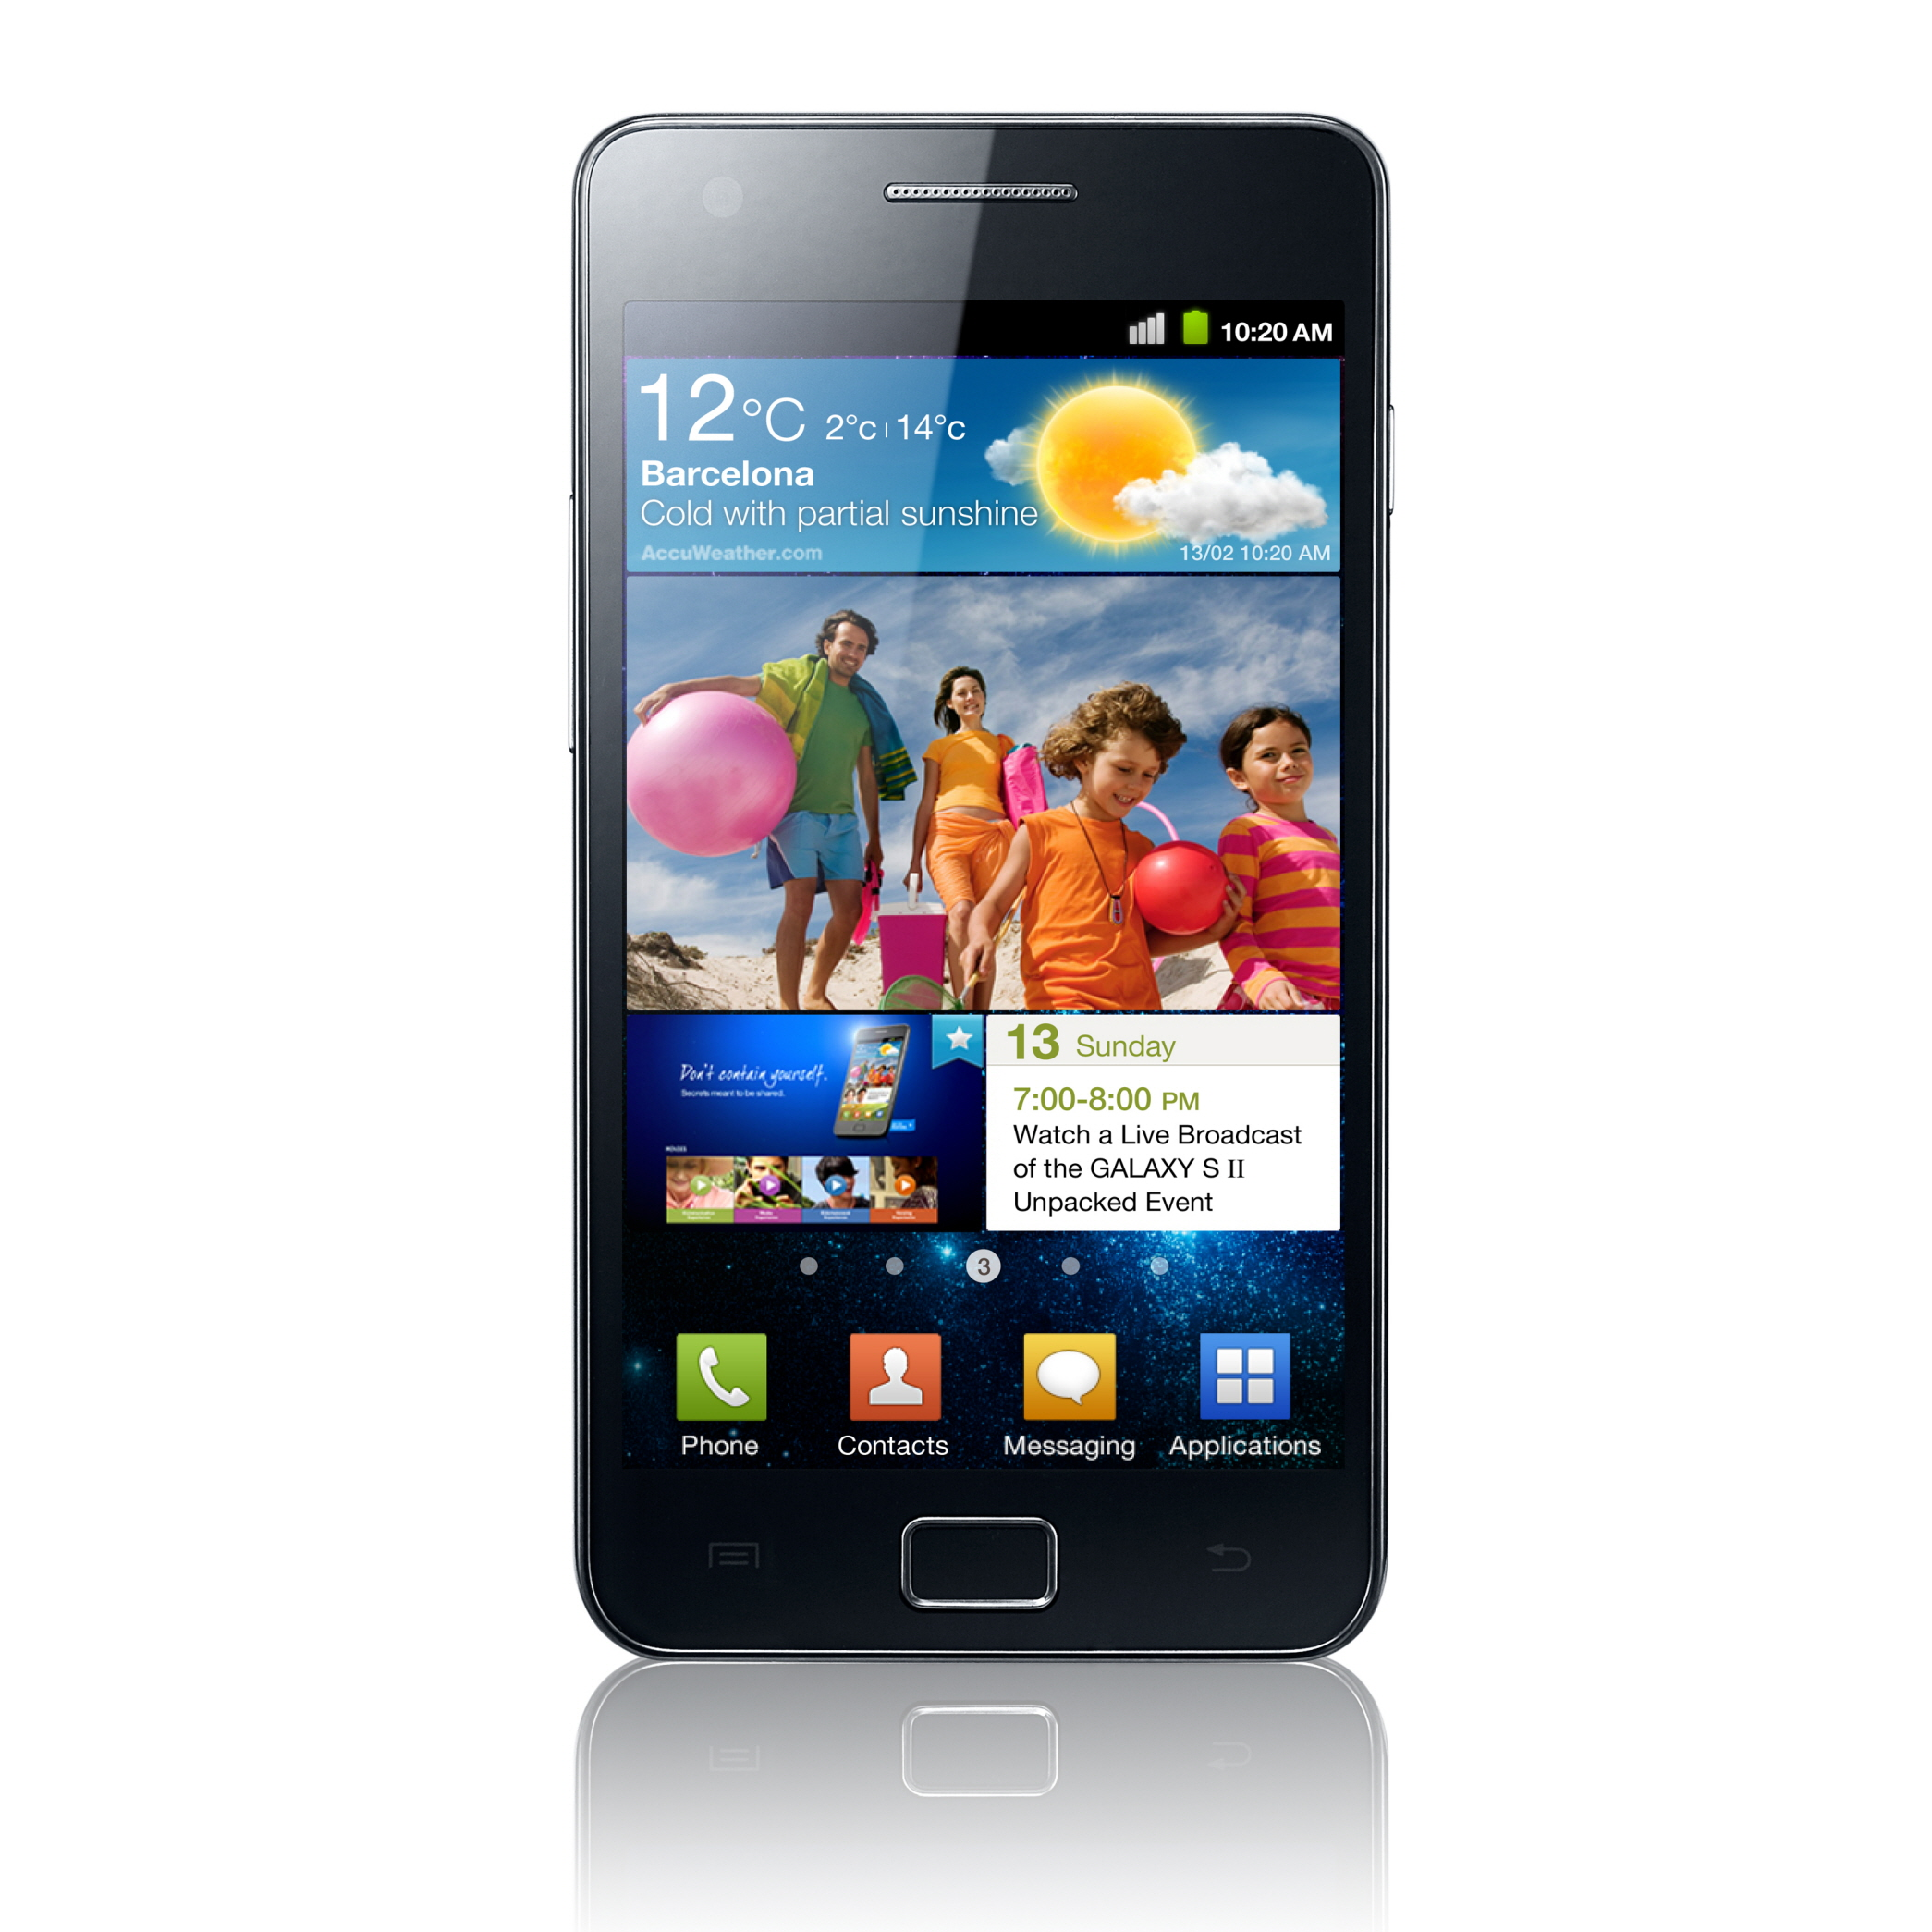 We just showed you that the Samsung Galaxy S2 is available for pre